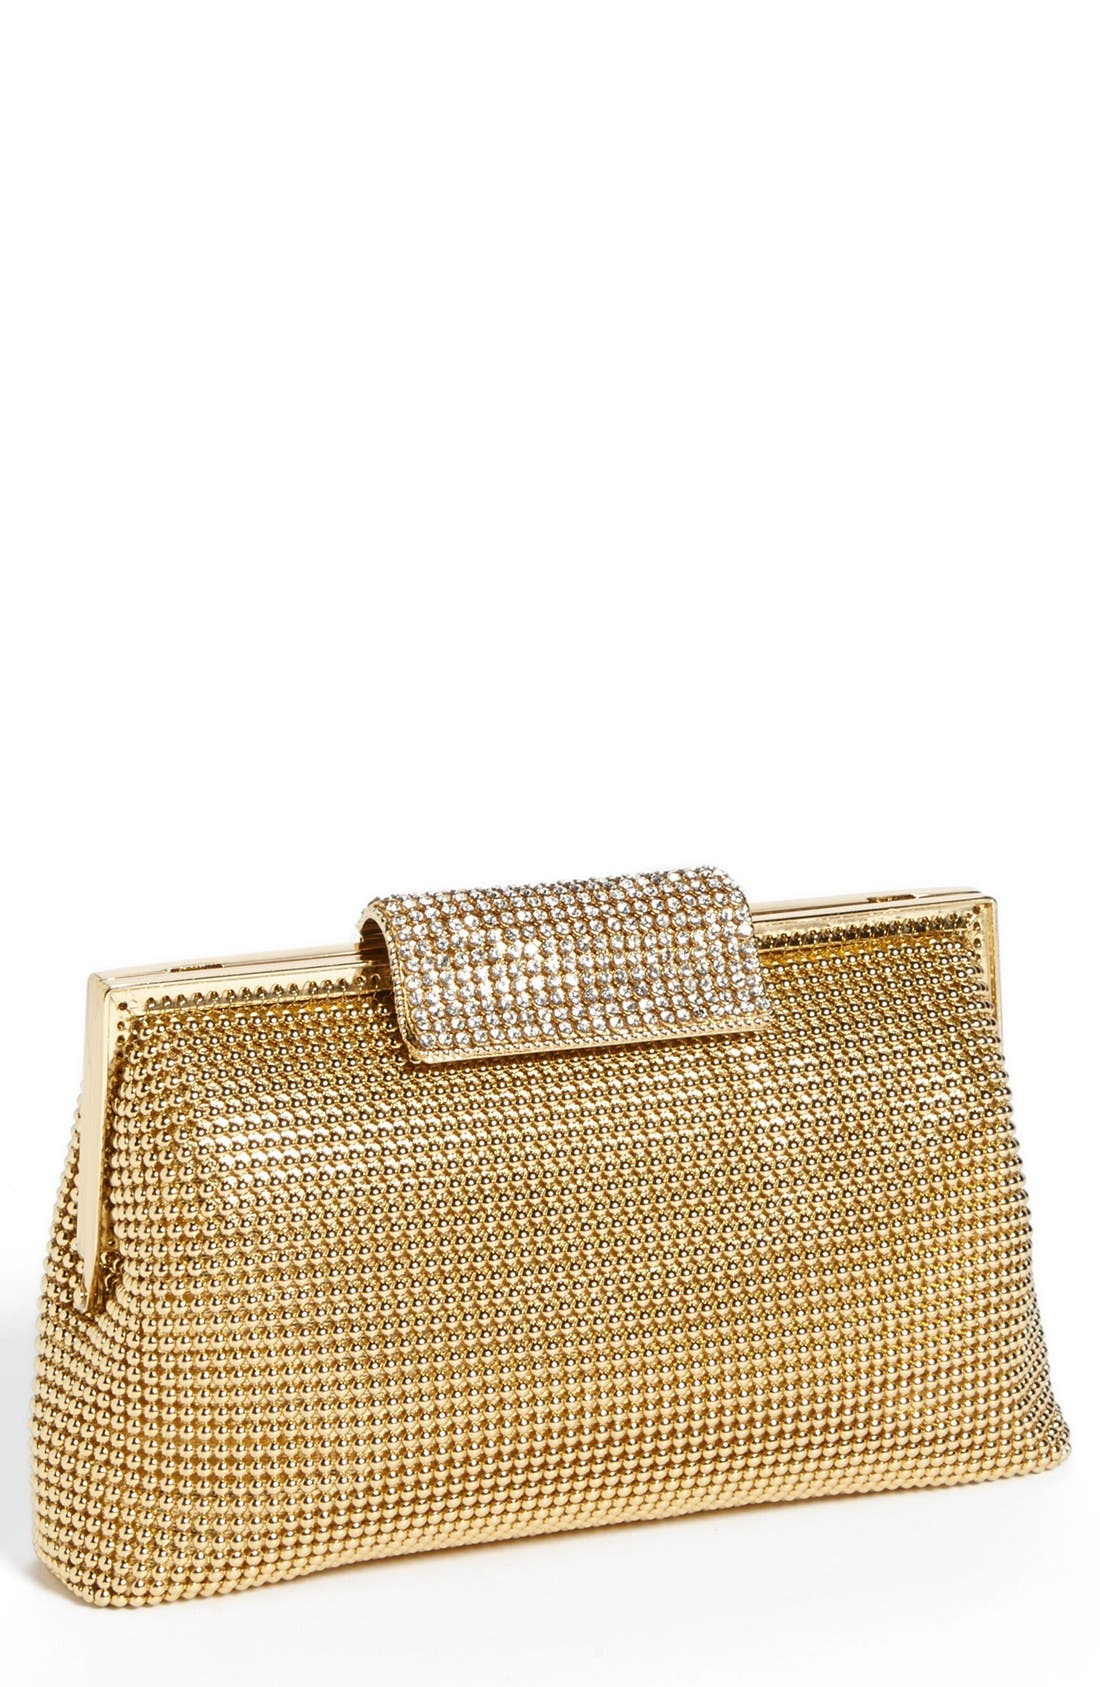 Whiting & Davis Crystal Frame Clutch